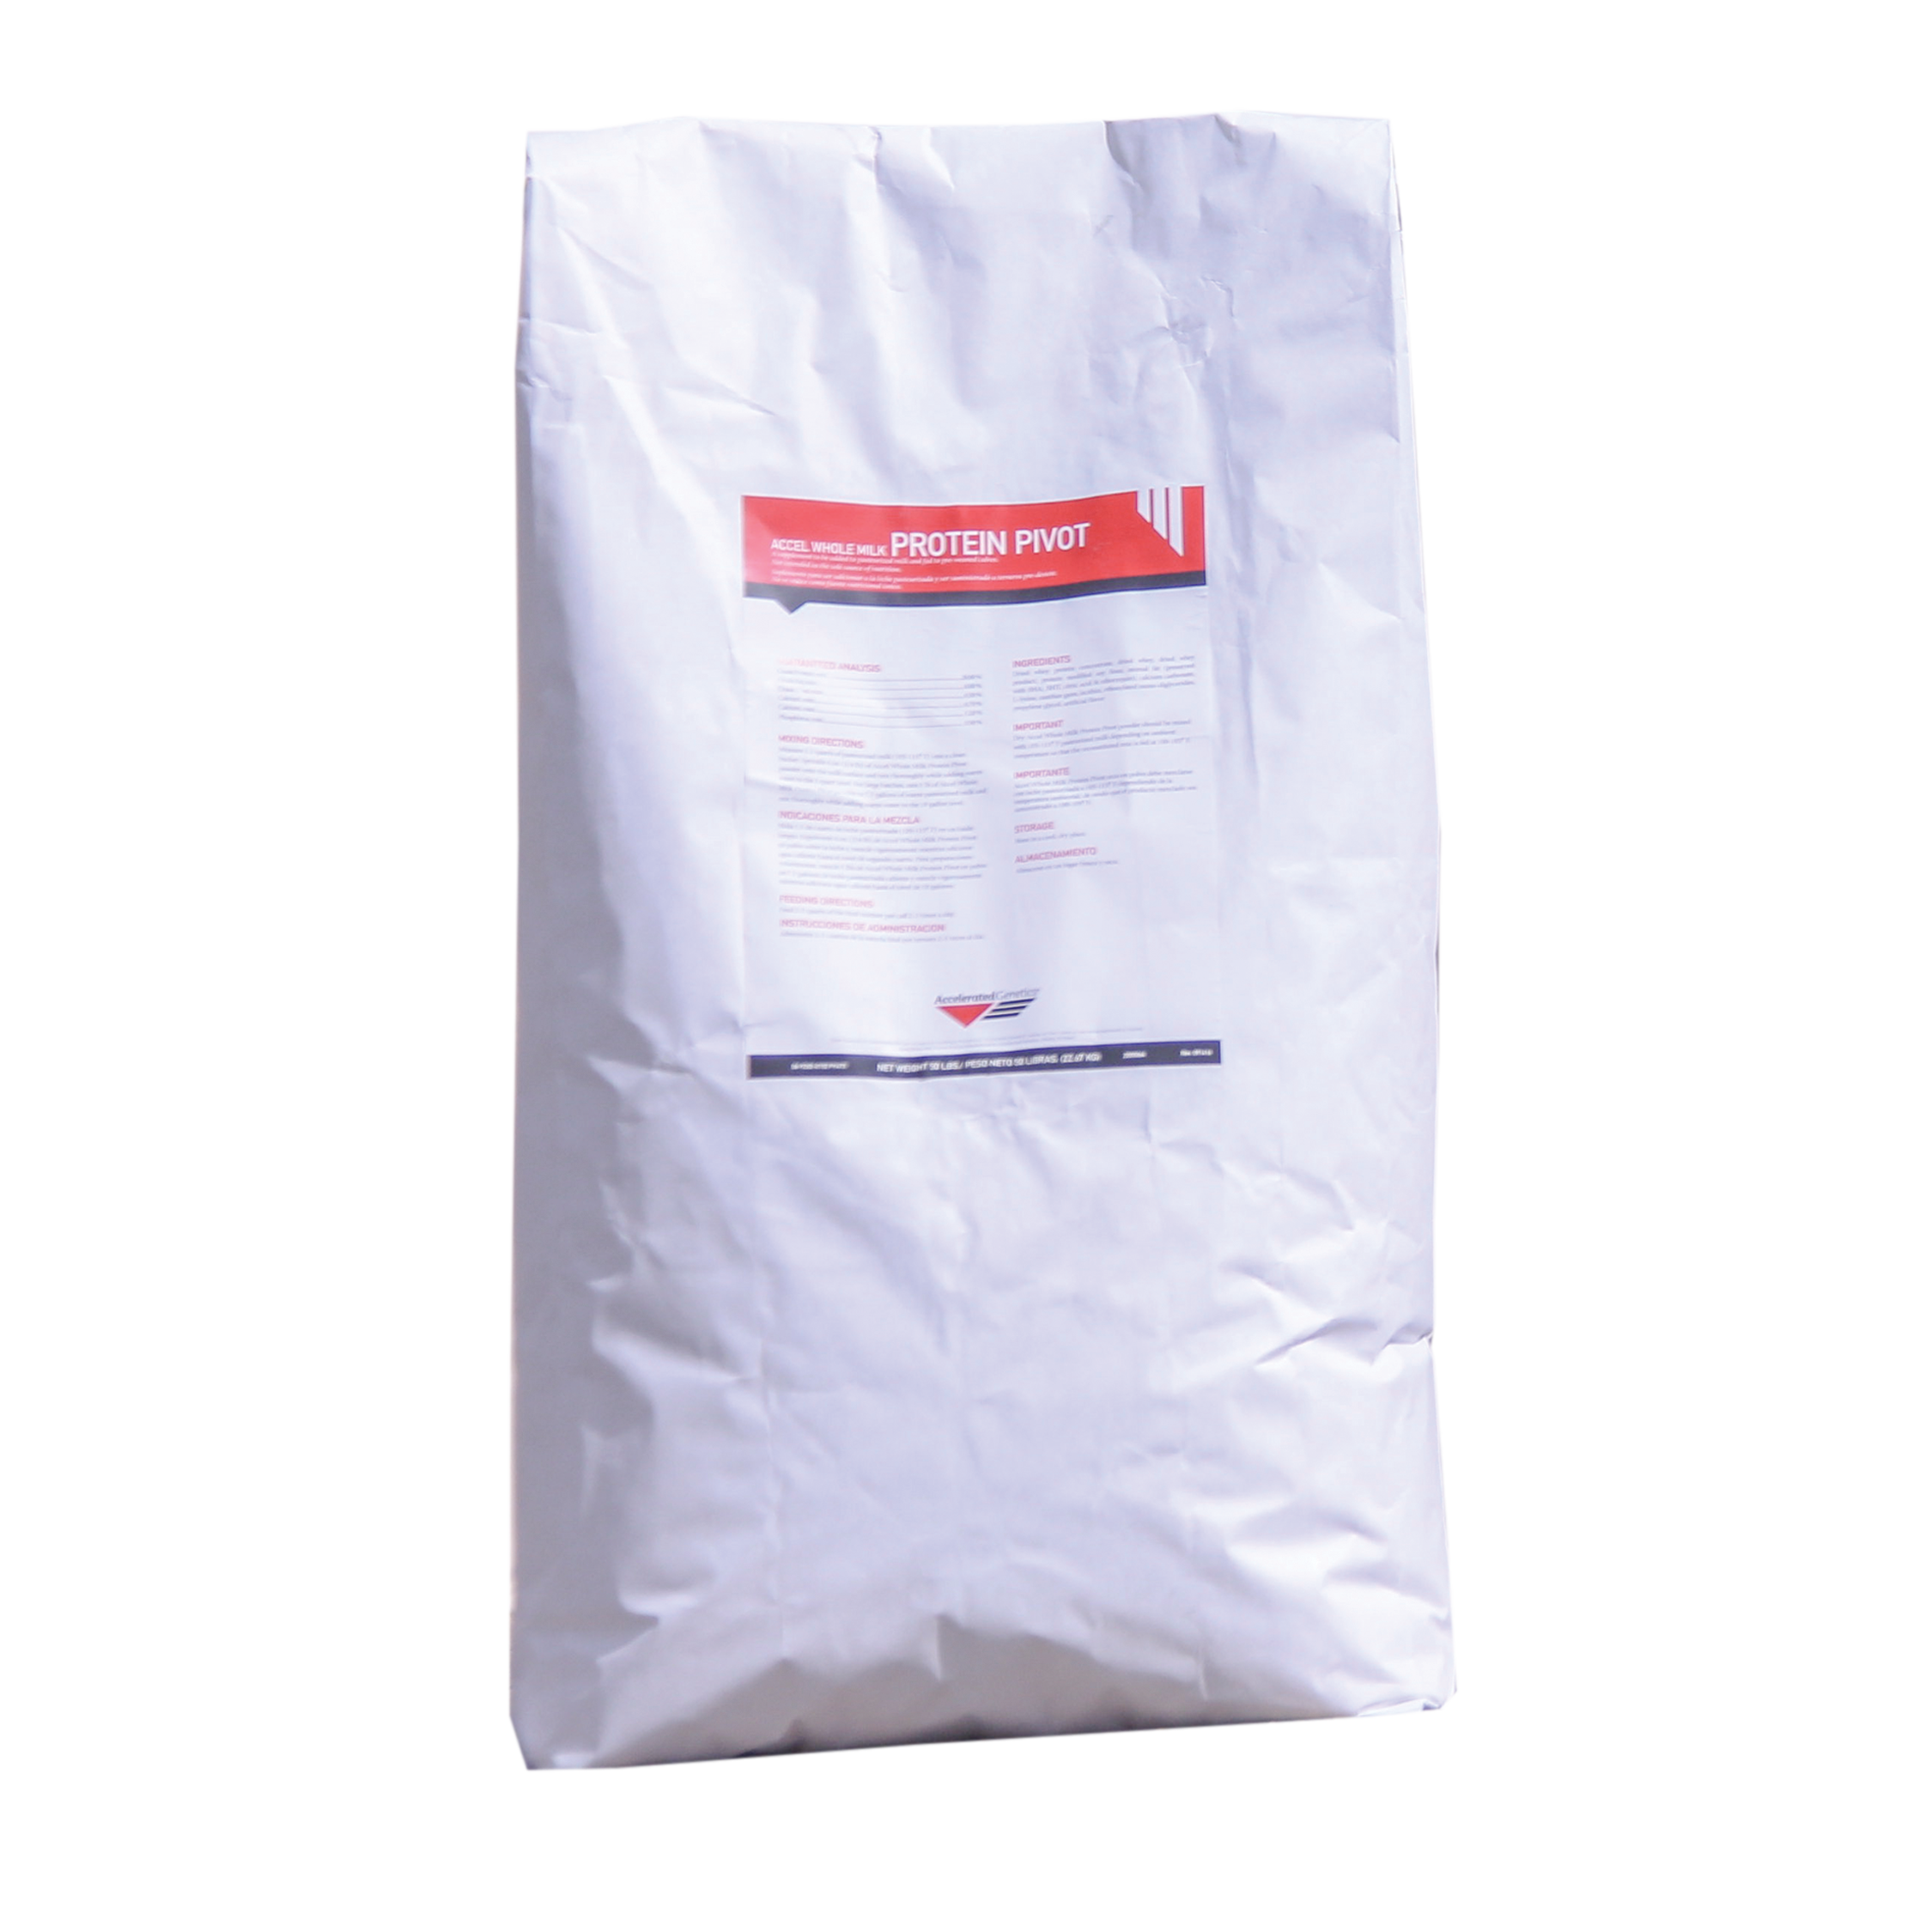 bag of accel whole milk protein pivot